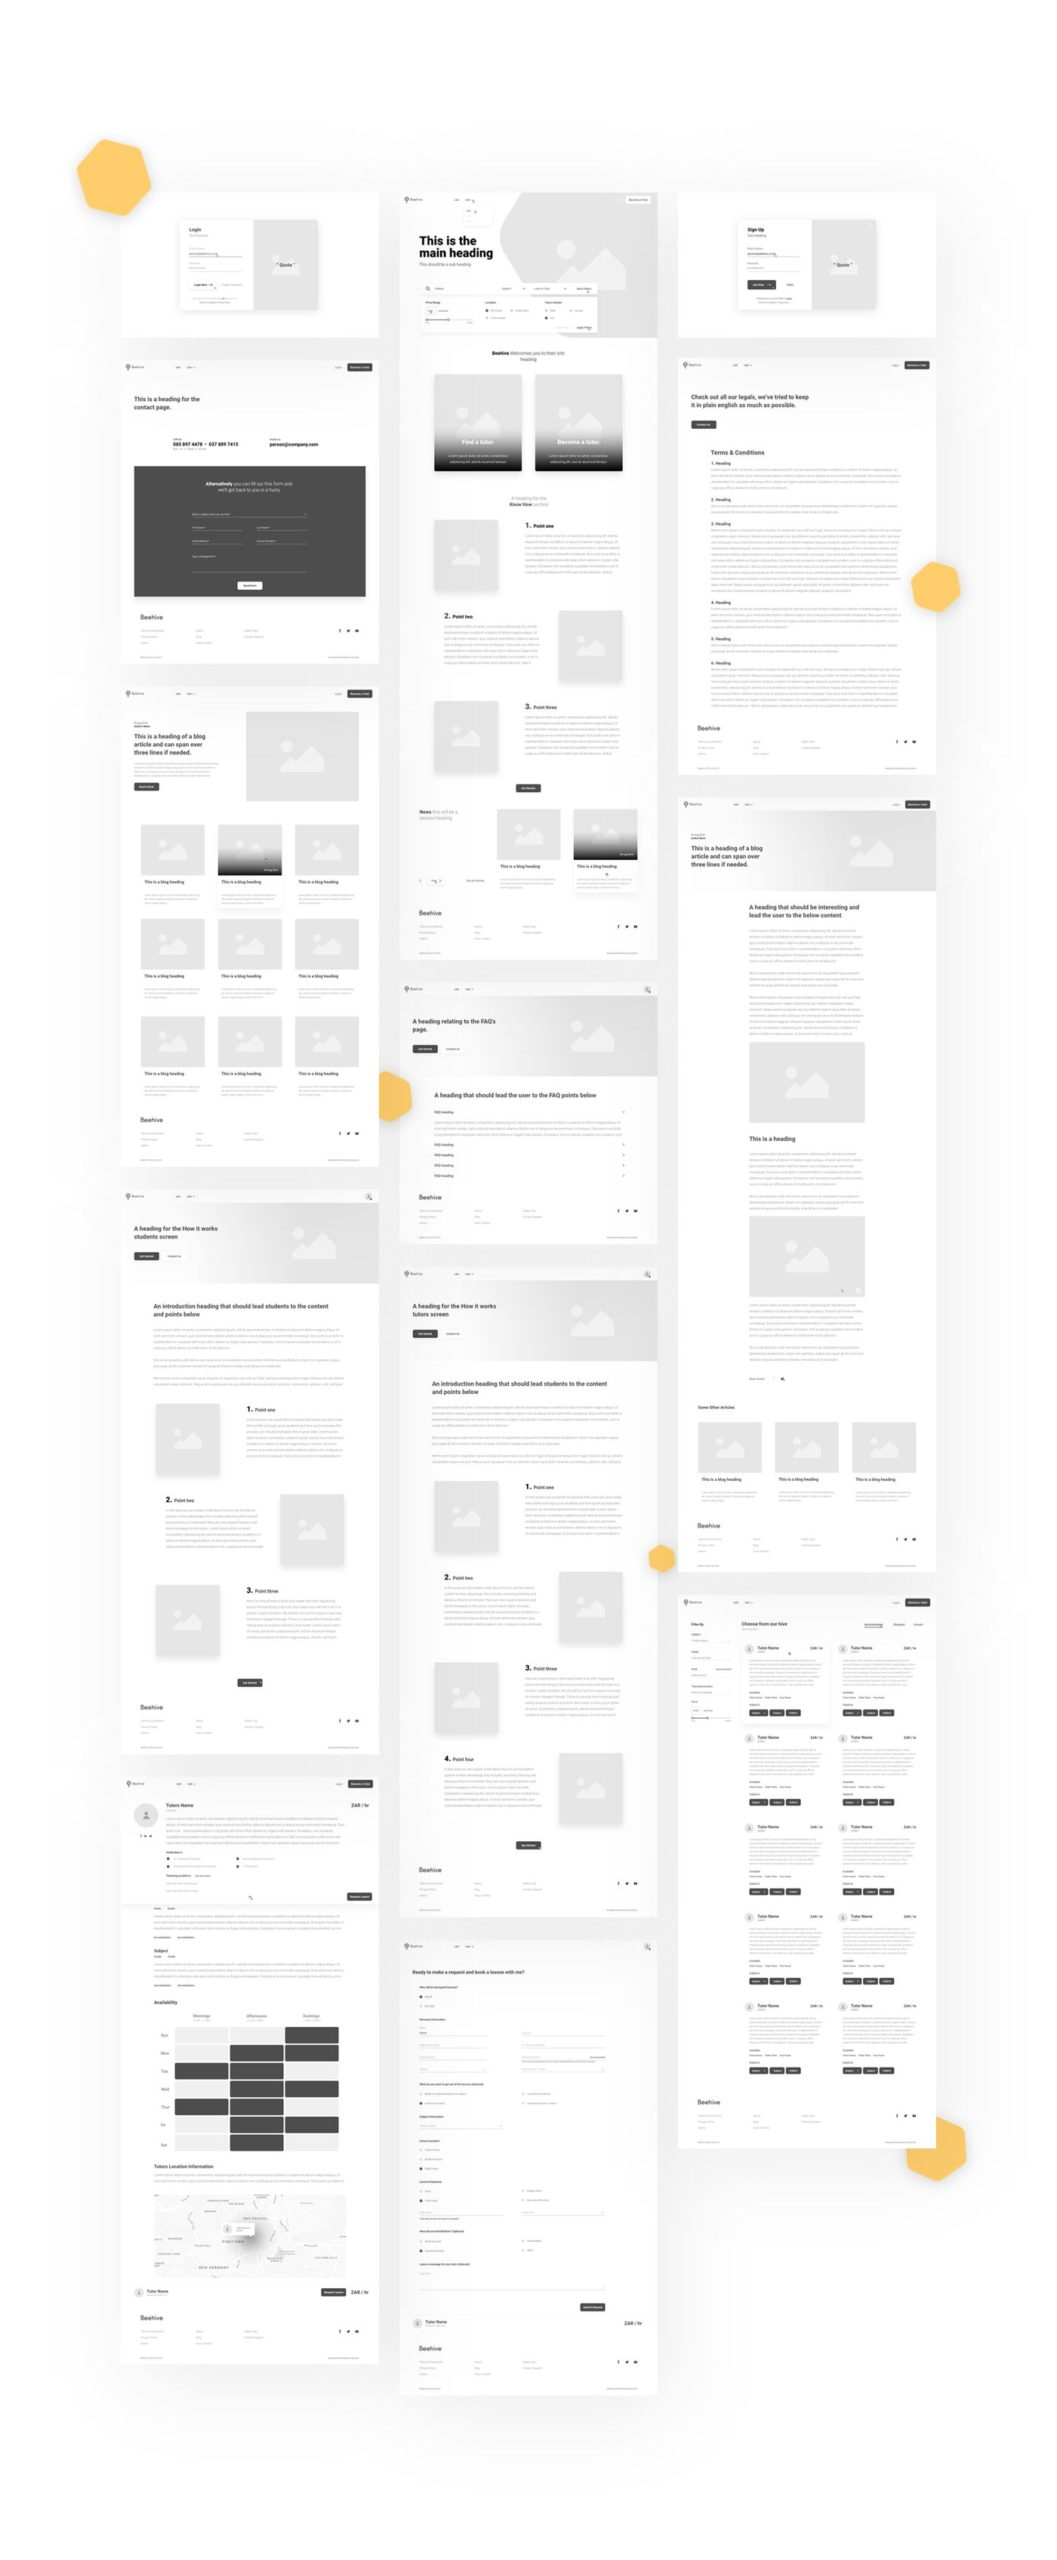 Picture of Beehive's System Wireframes